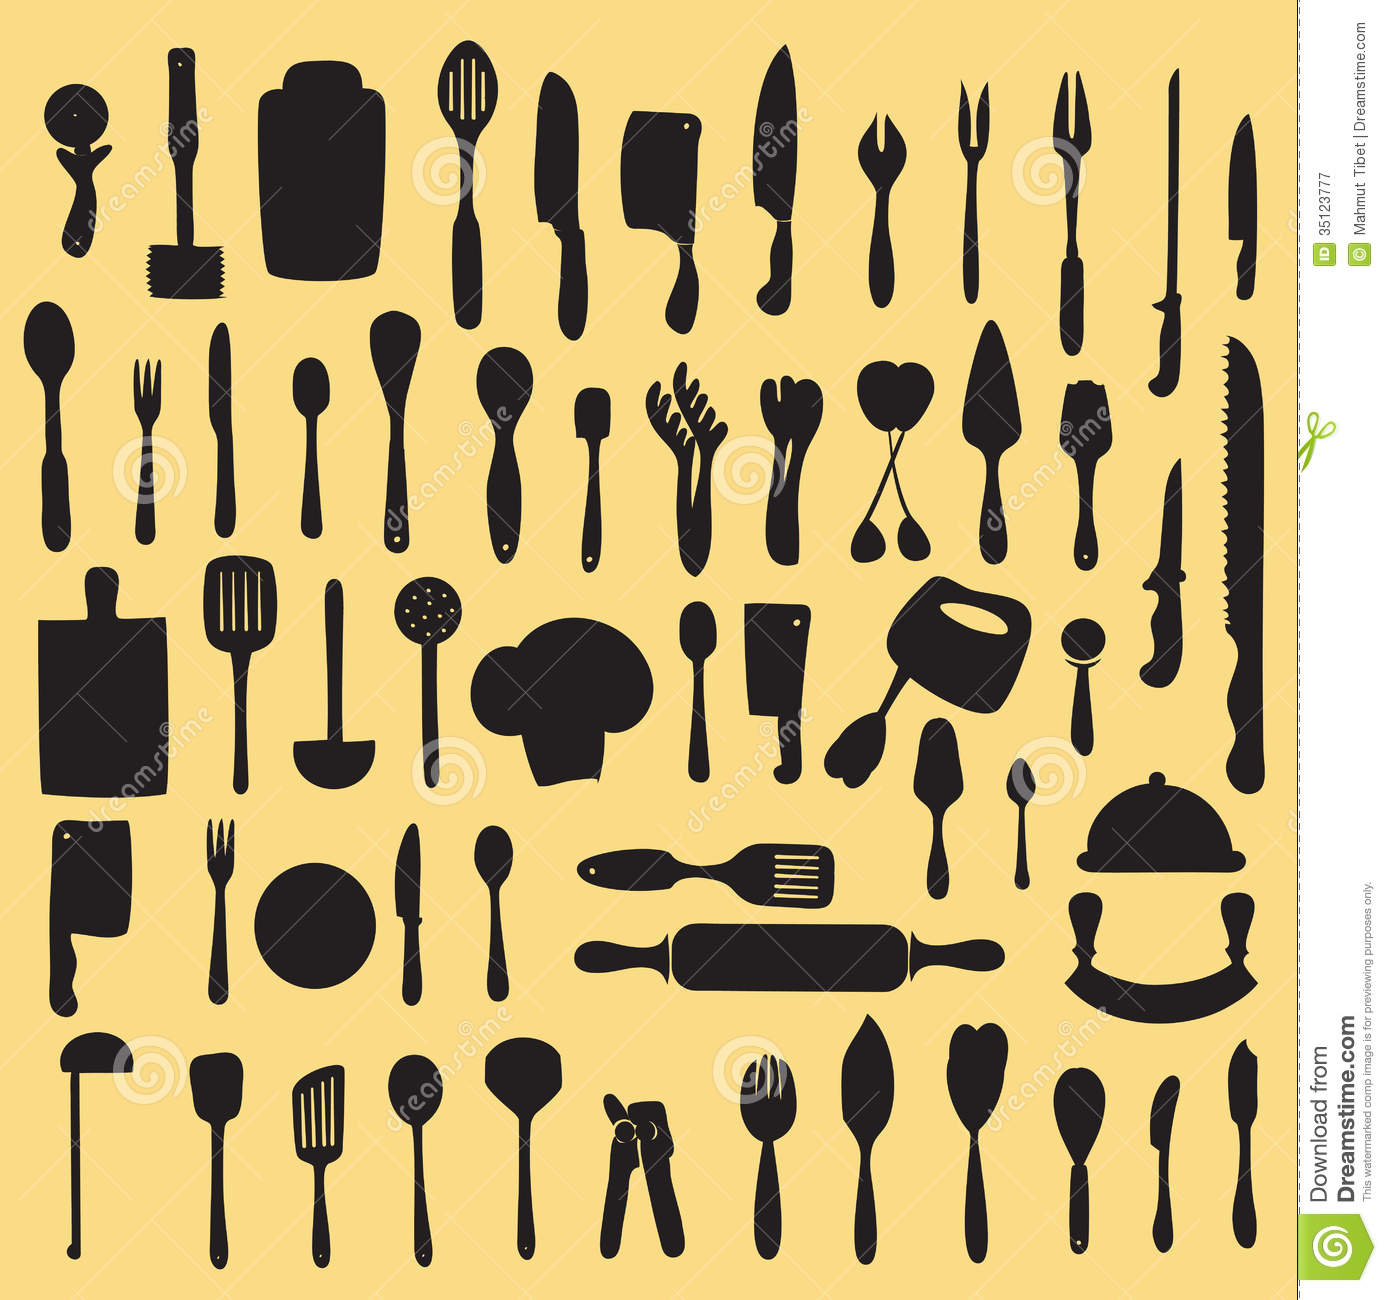 Kitchen Utensils Silhouette Vector Free Delighful Kitchen Utensils Silhouette Full Version S On Decorating